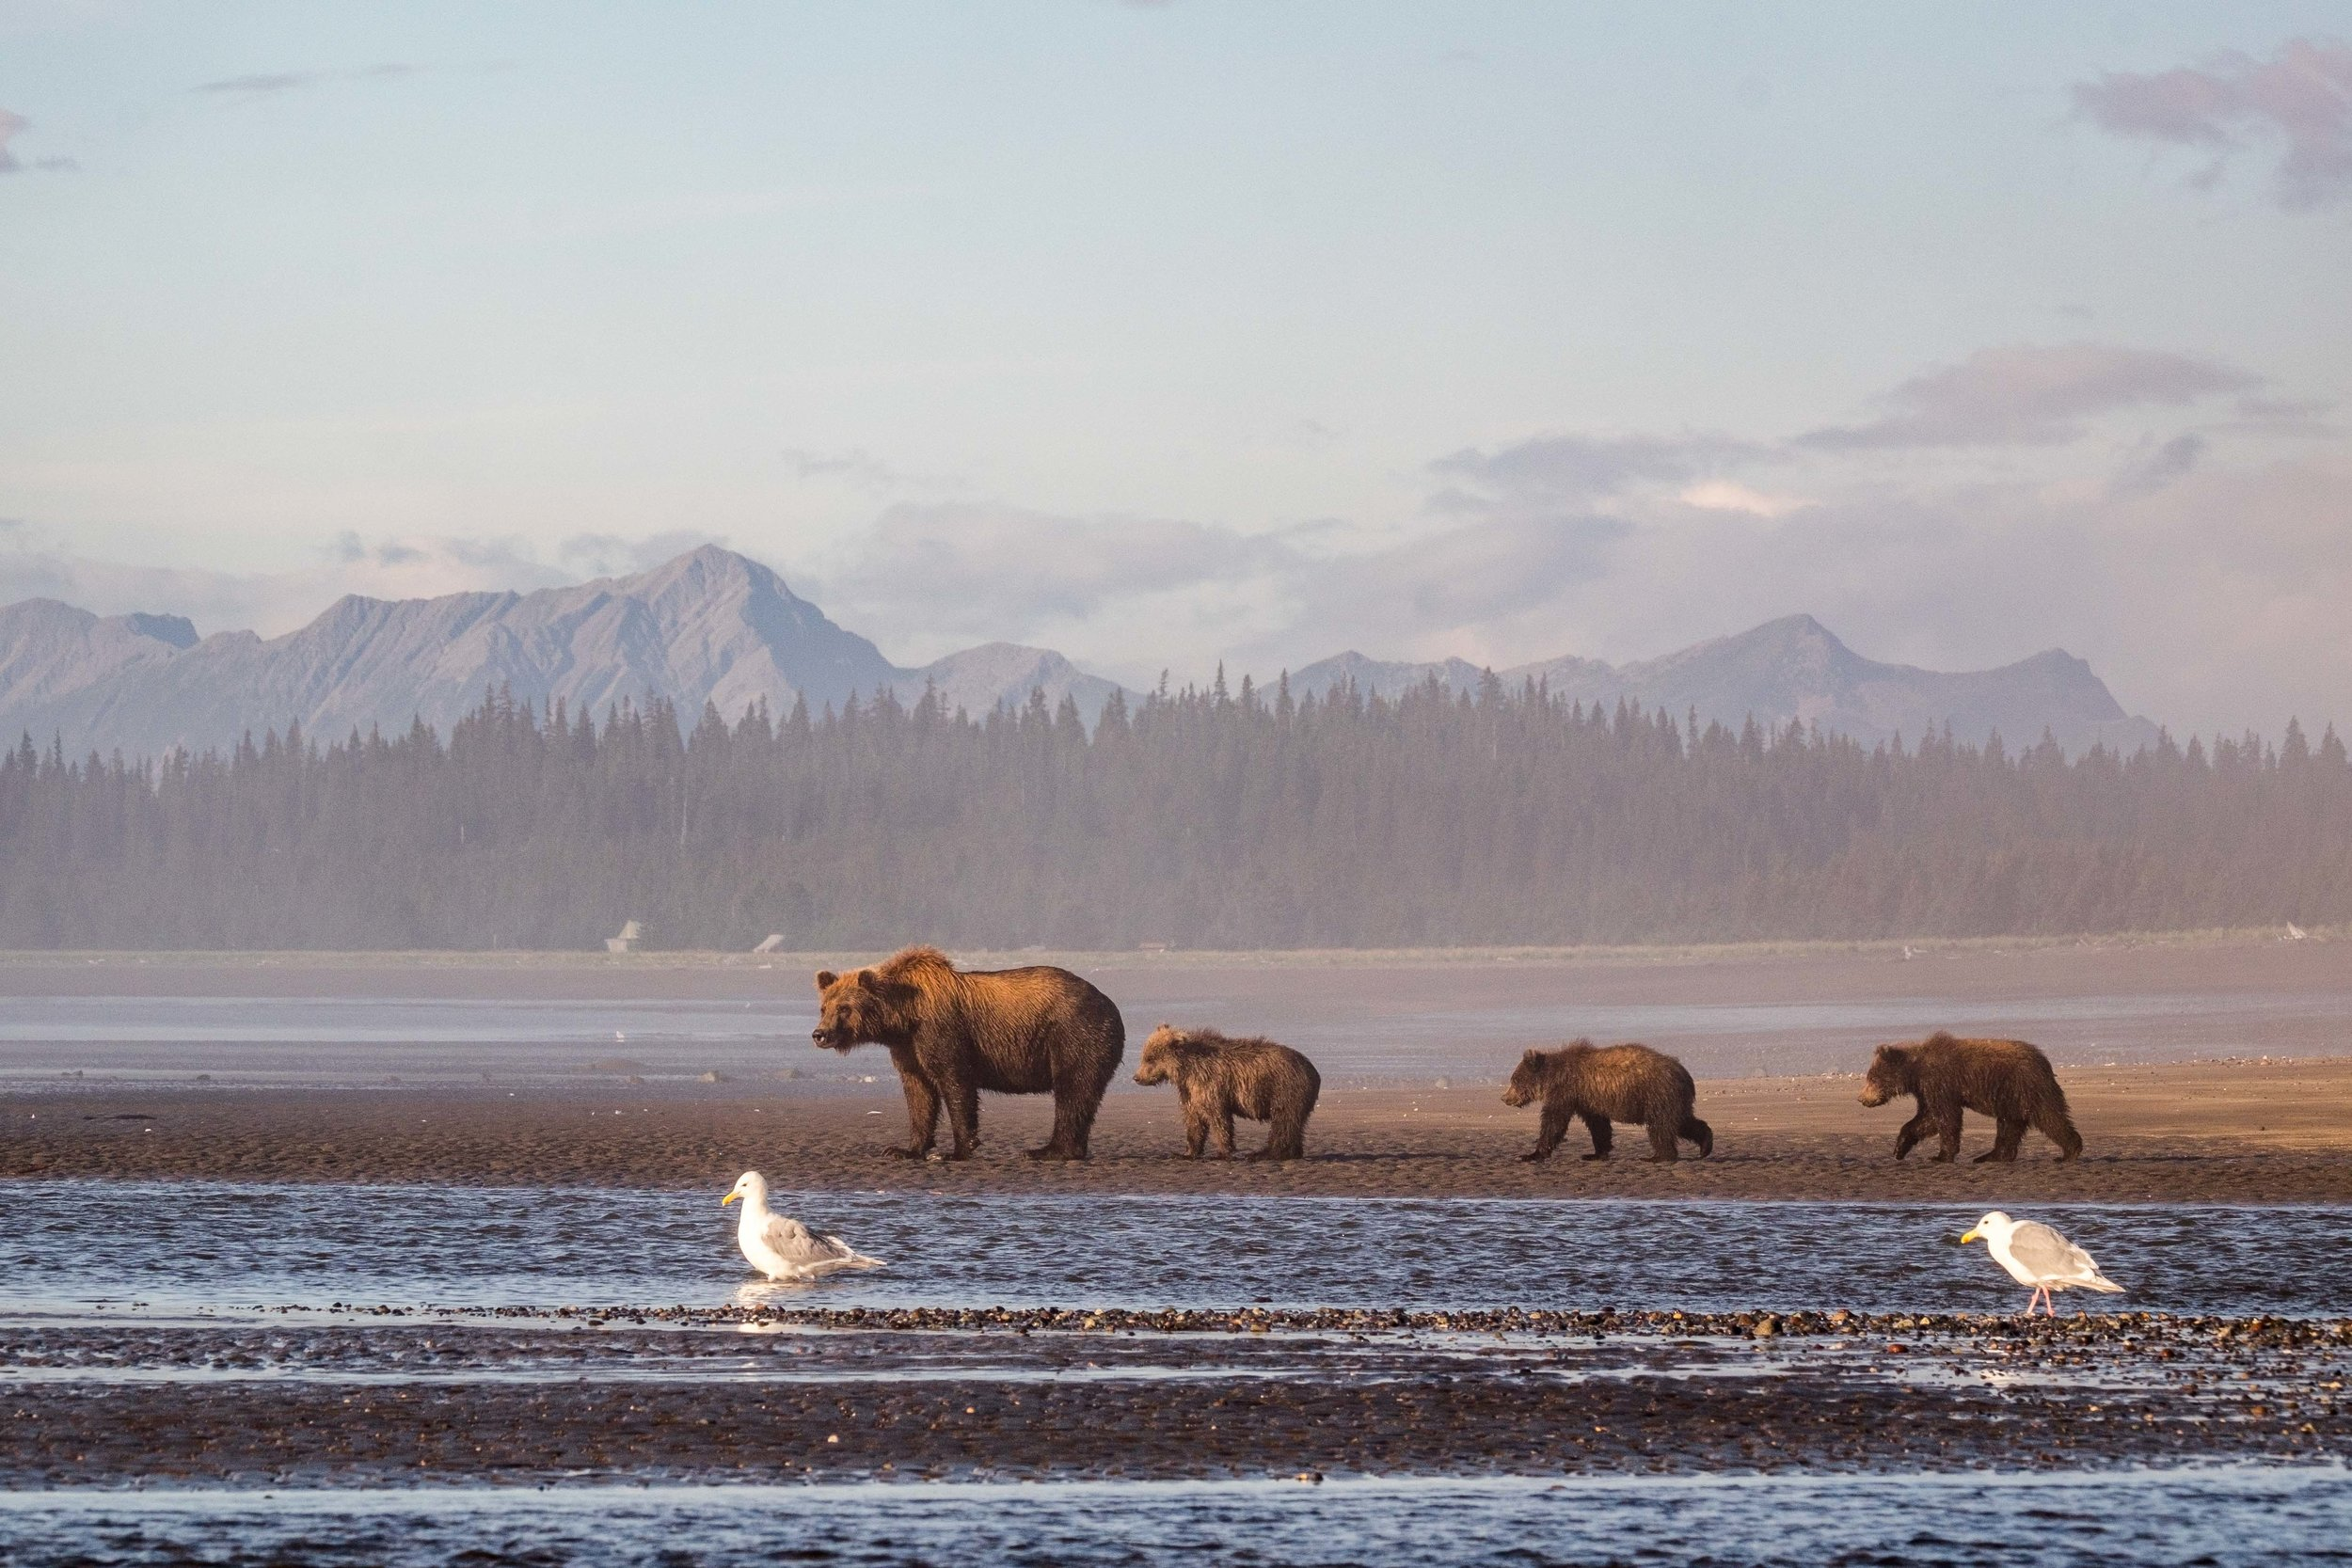 A sow coastal brown bear on the shores of the Cook Inlet with her cubs in tow.